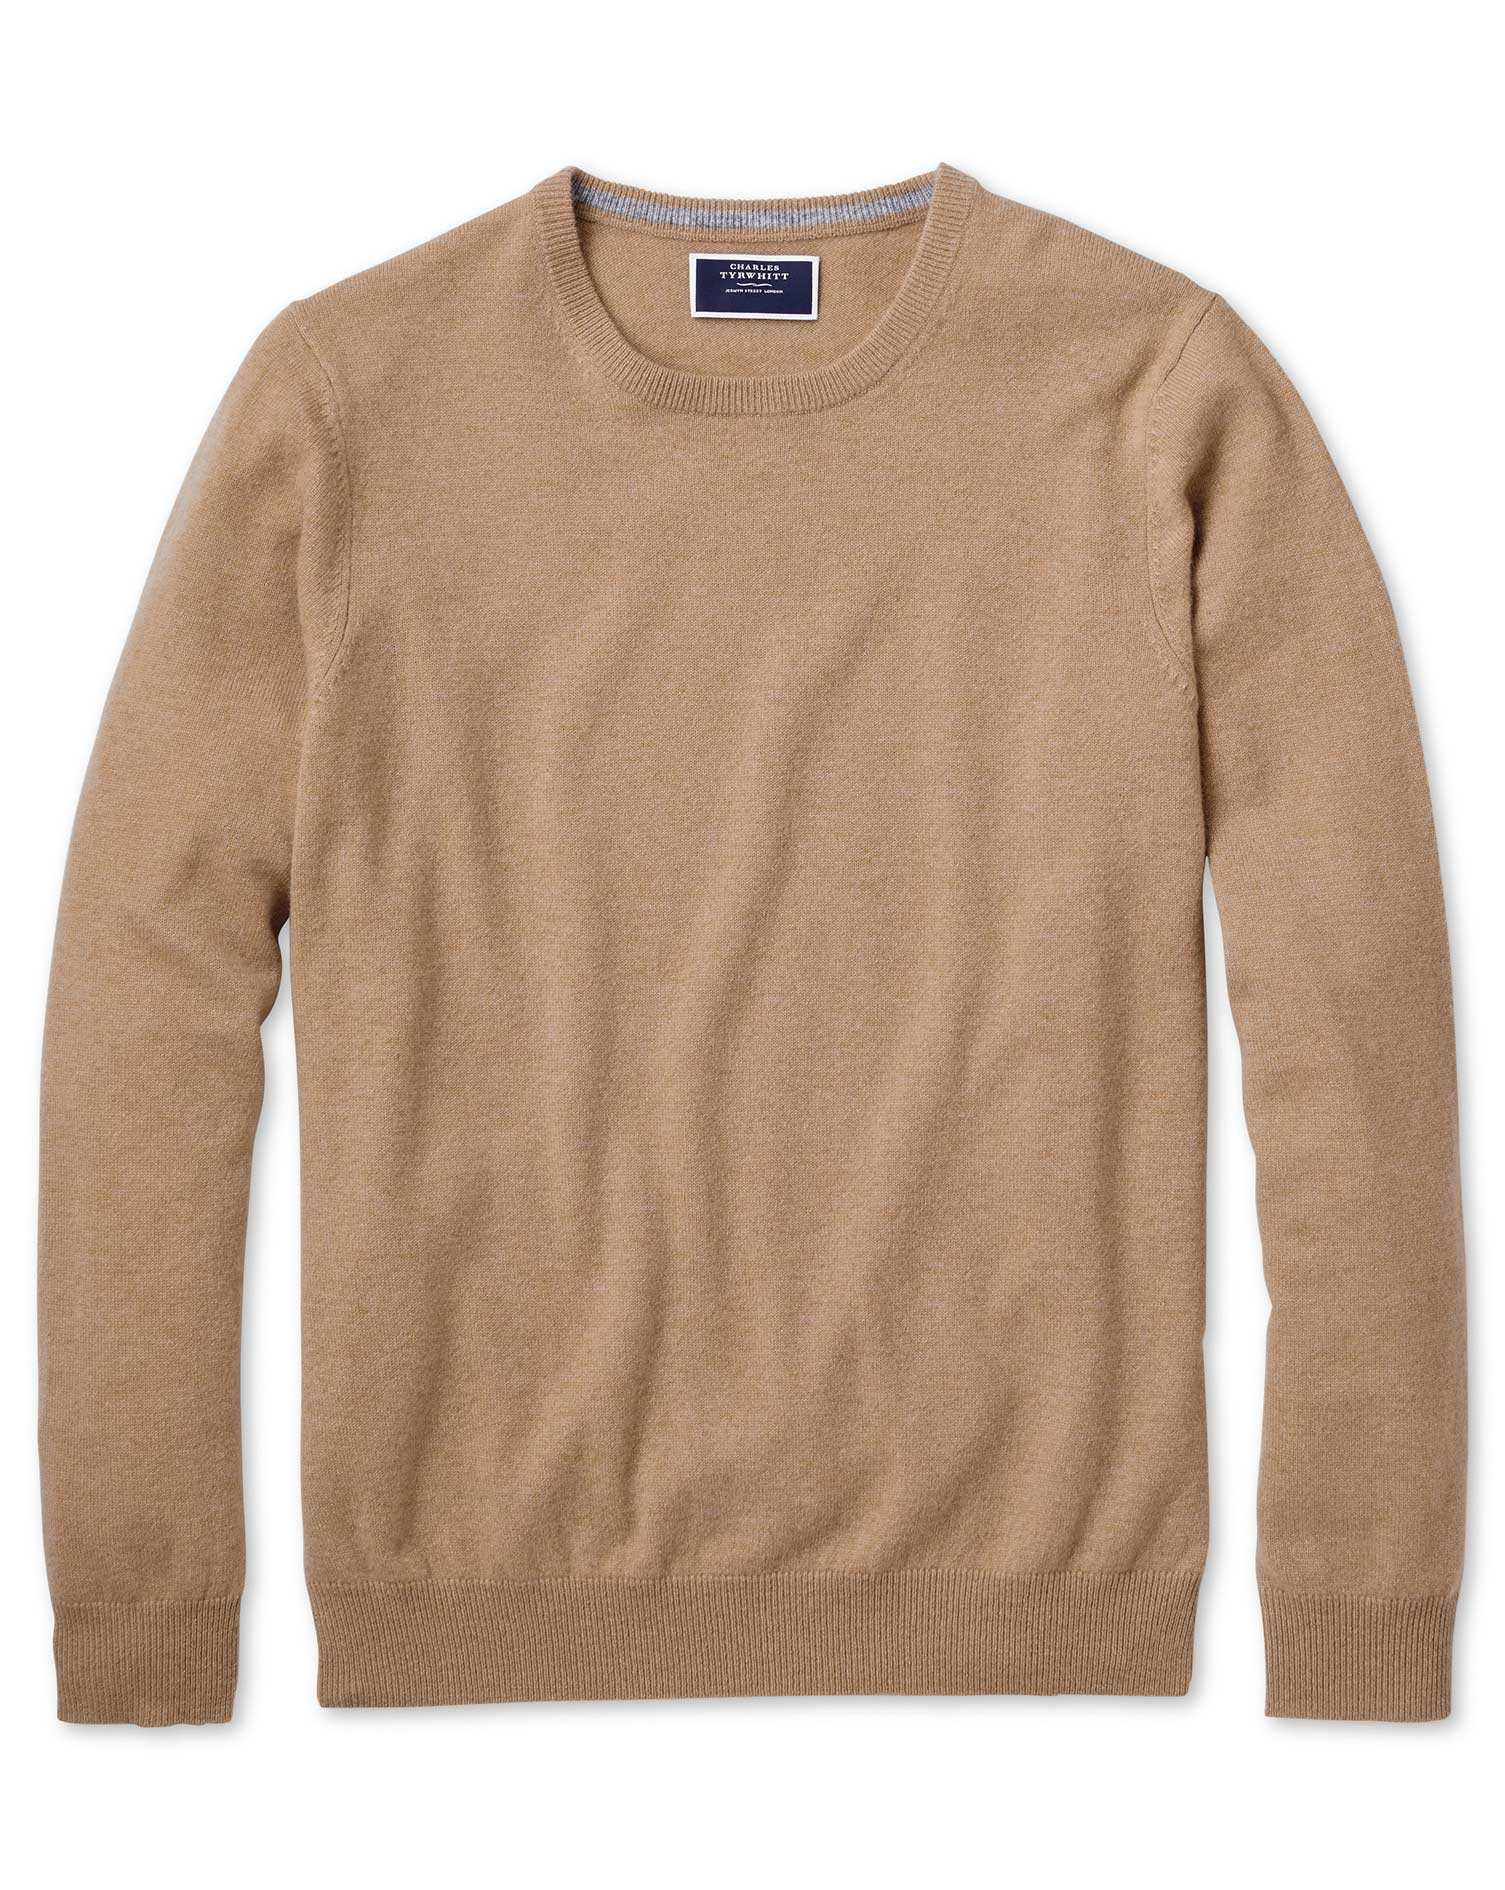 Tan Crew Neck Cashmere Jumper Size Large by Charles Tyrwhitt